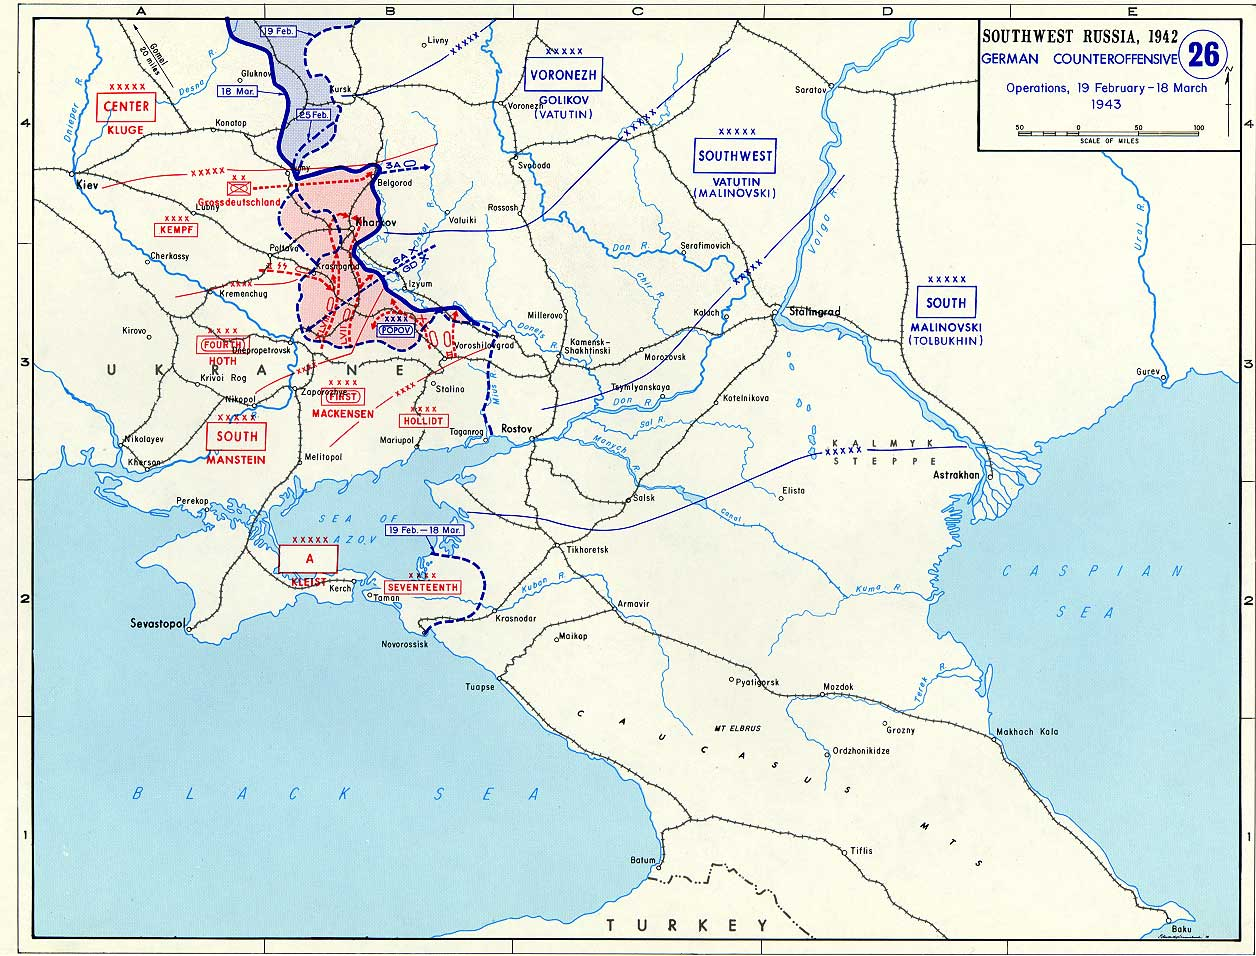 Map Of Germany And Russia.Map Of German Counteroffensive Into Southwest Russia February March